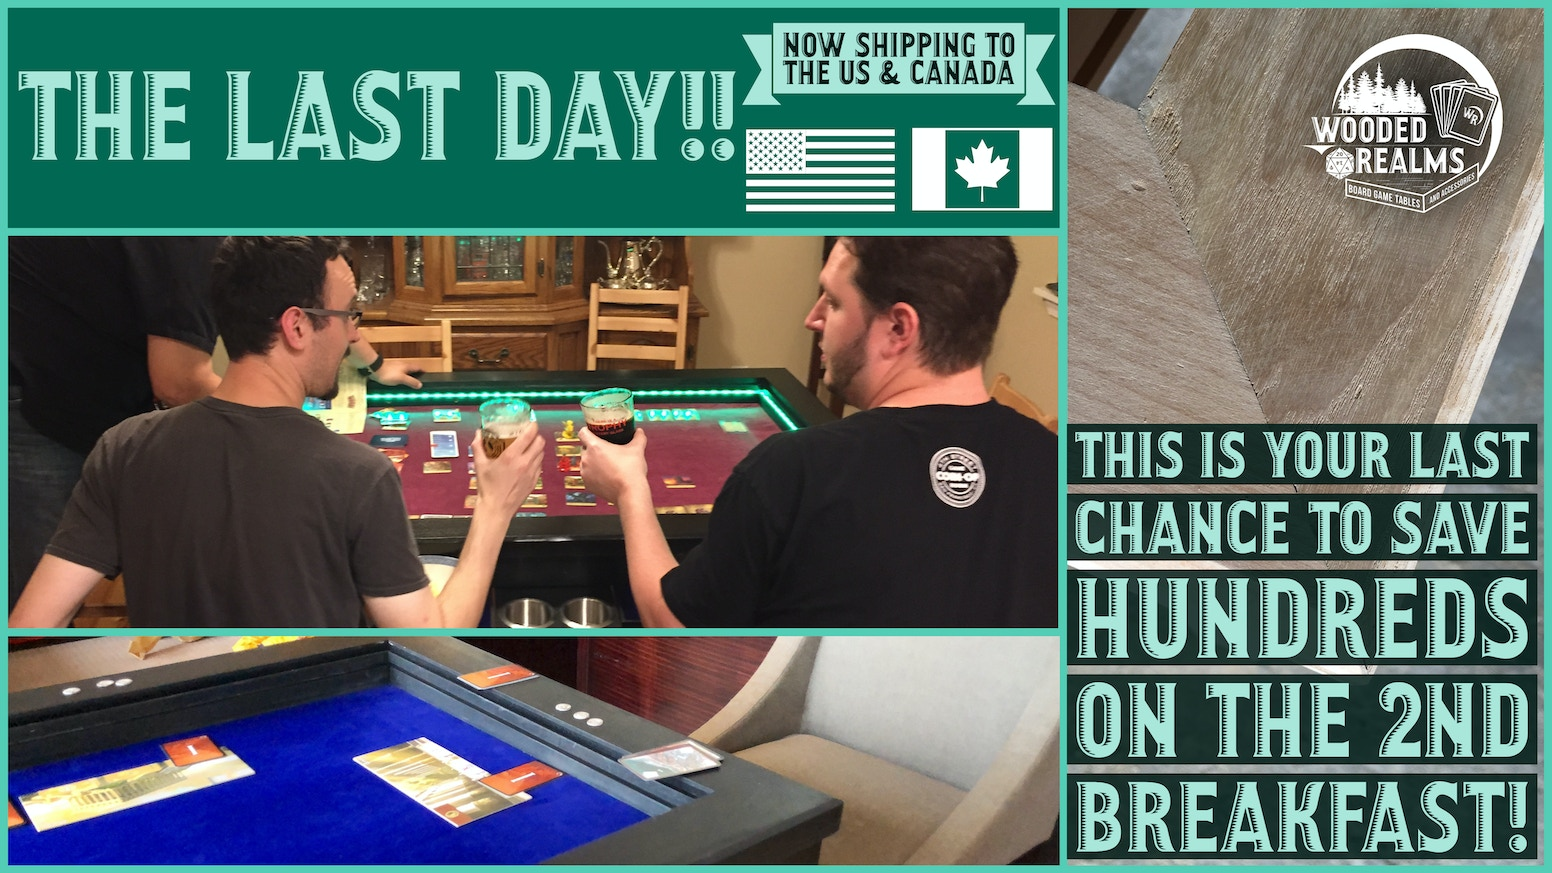 2nd Breakfast: An Affordable, Quality Board Game Table by